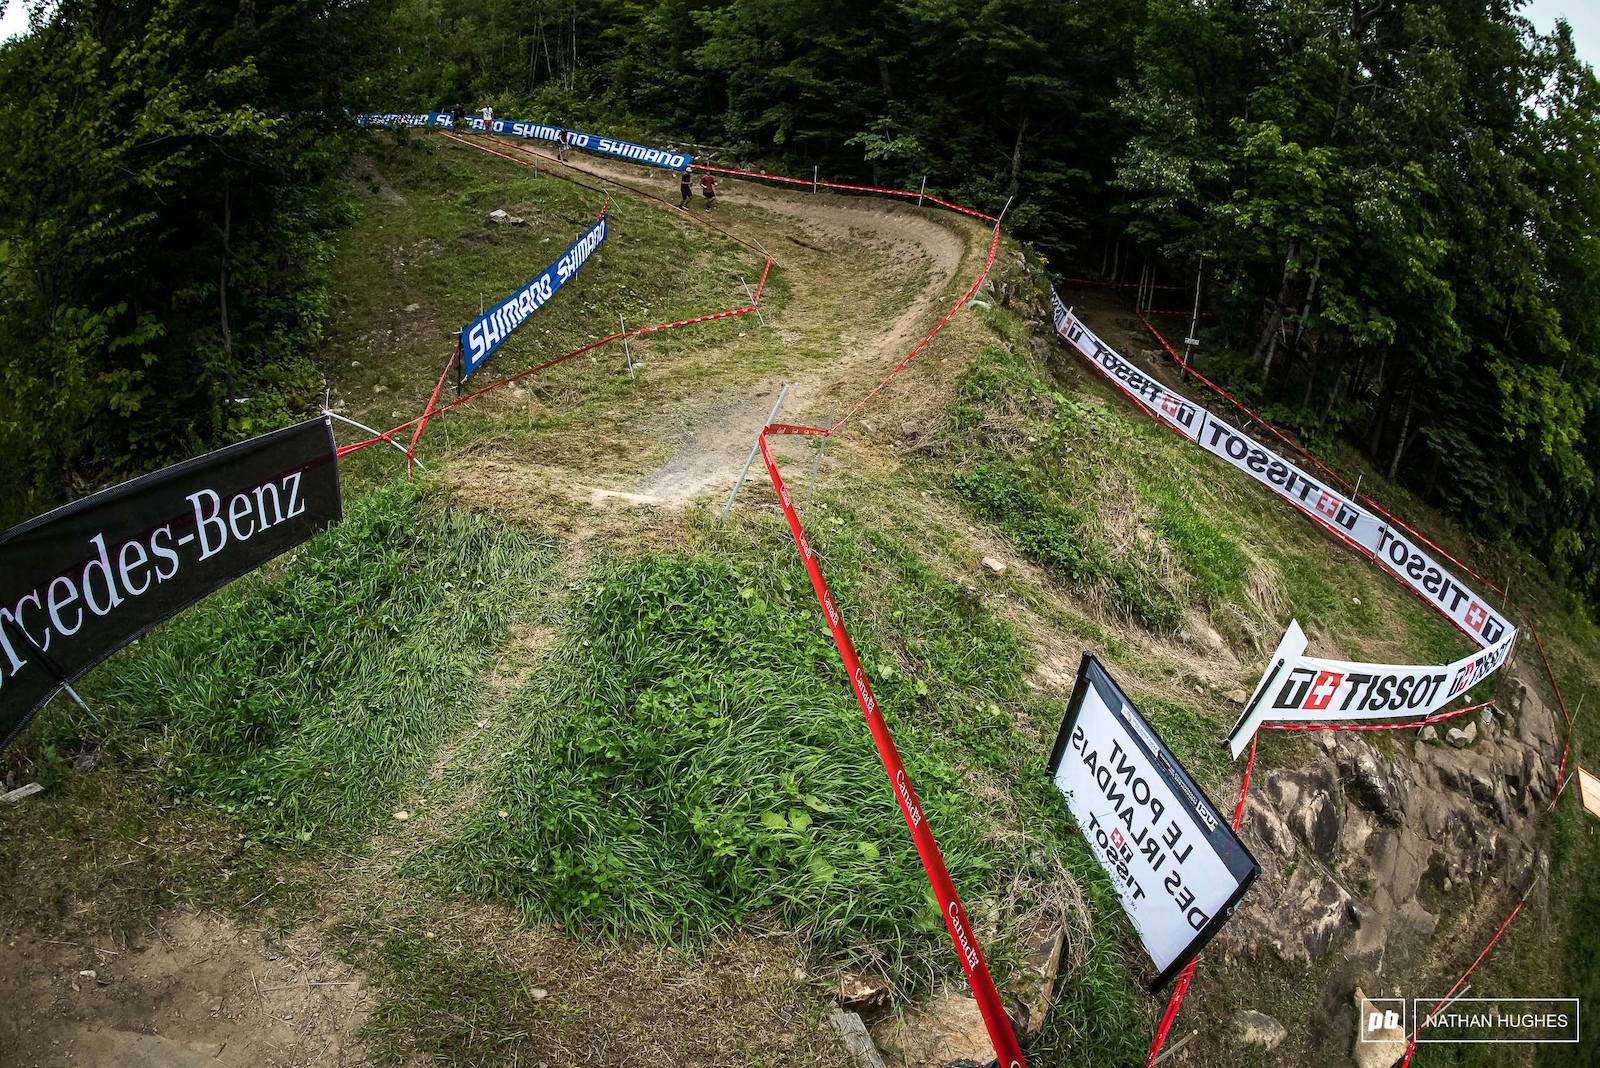 Memories of Aaron Gwin s 2017 winning run and his inside line on this berm shortly before the finish area.